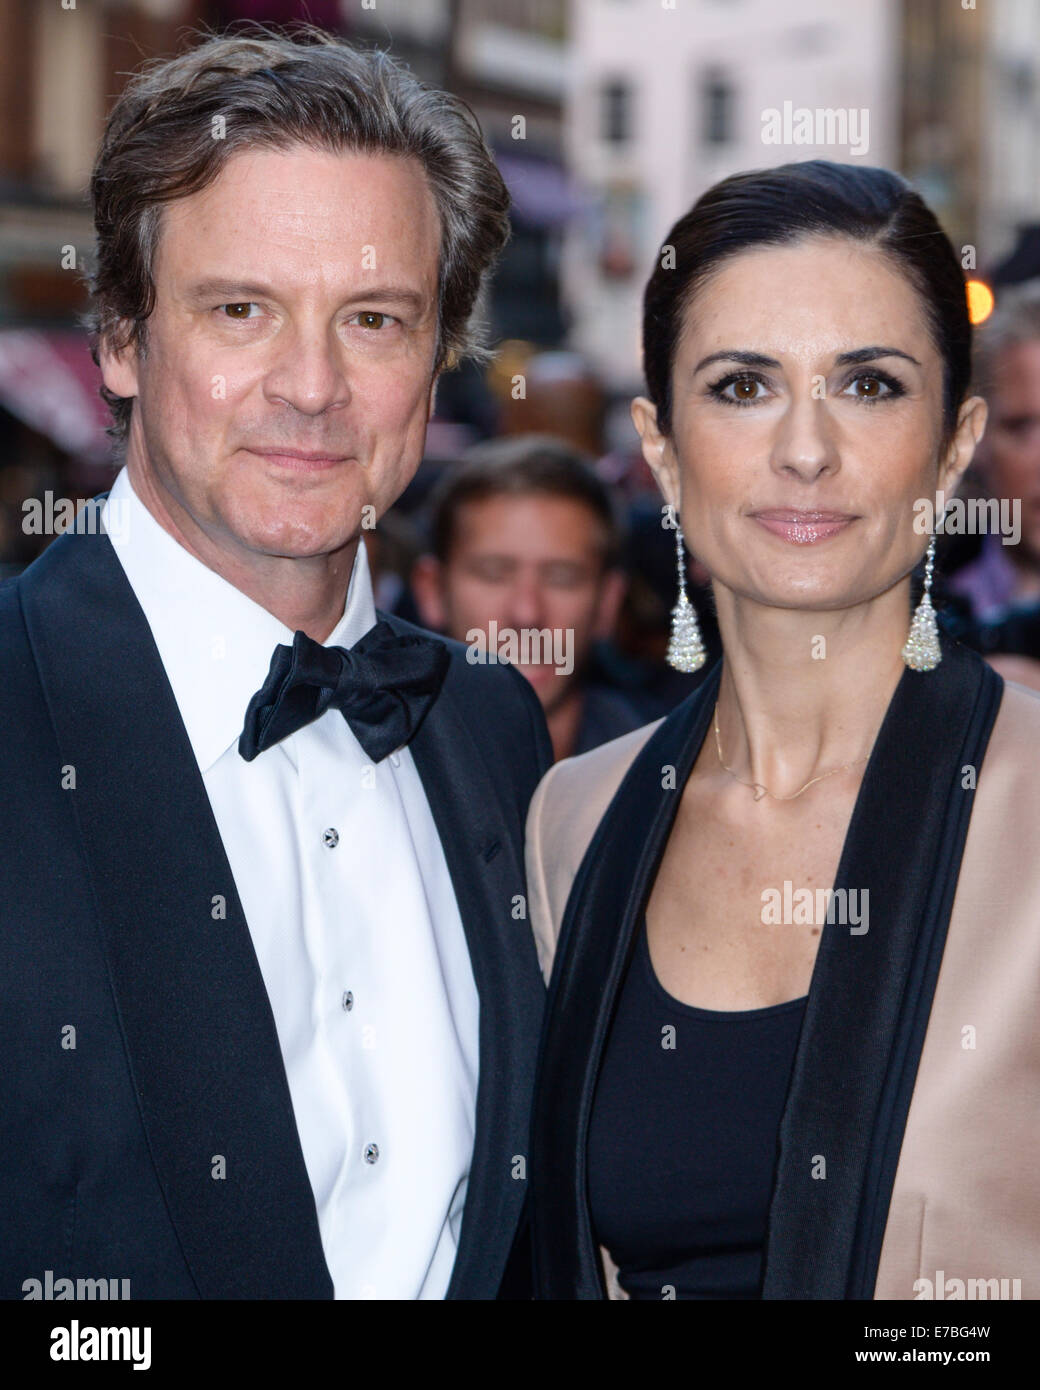 Colin Firth und Livia Firth kommt bei der GQ Men of the Year Award im 09.02.2014 am Royal Opera House, London. Personen Stockbild